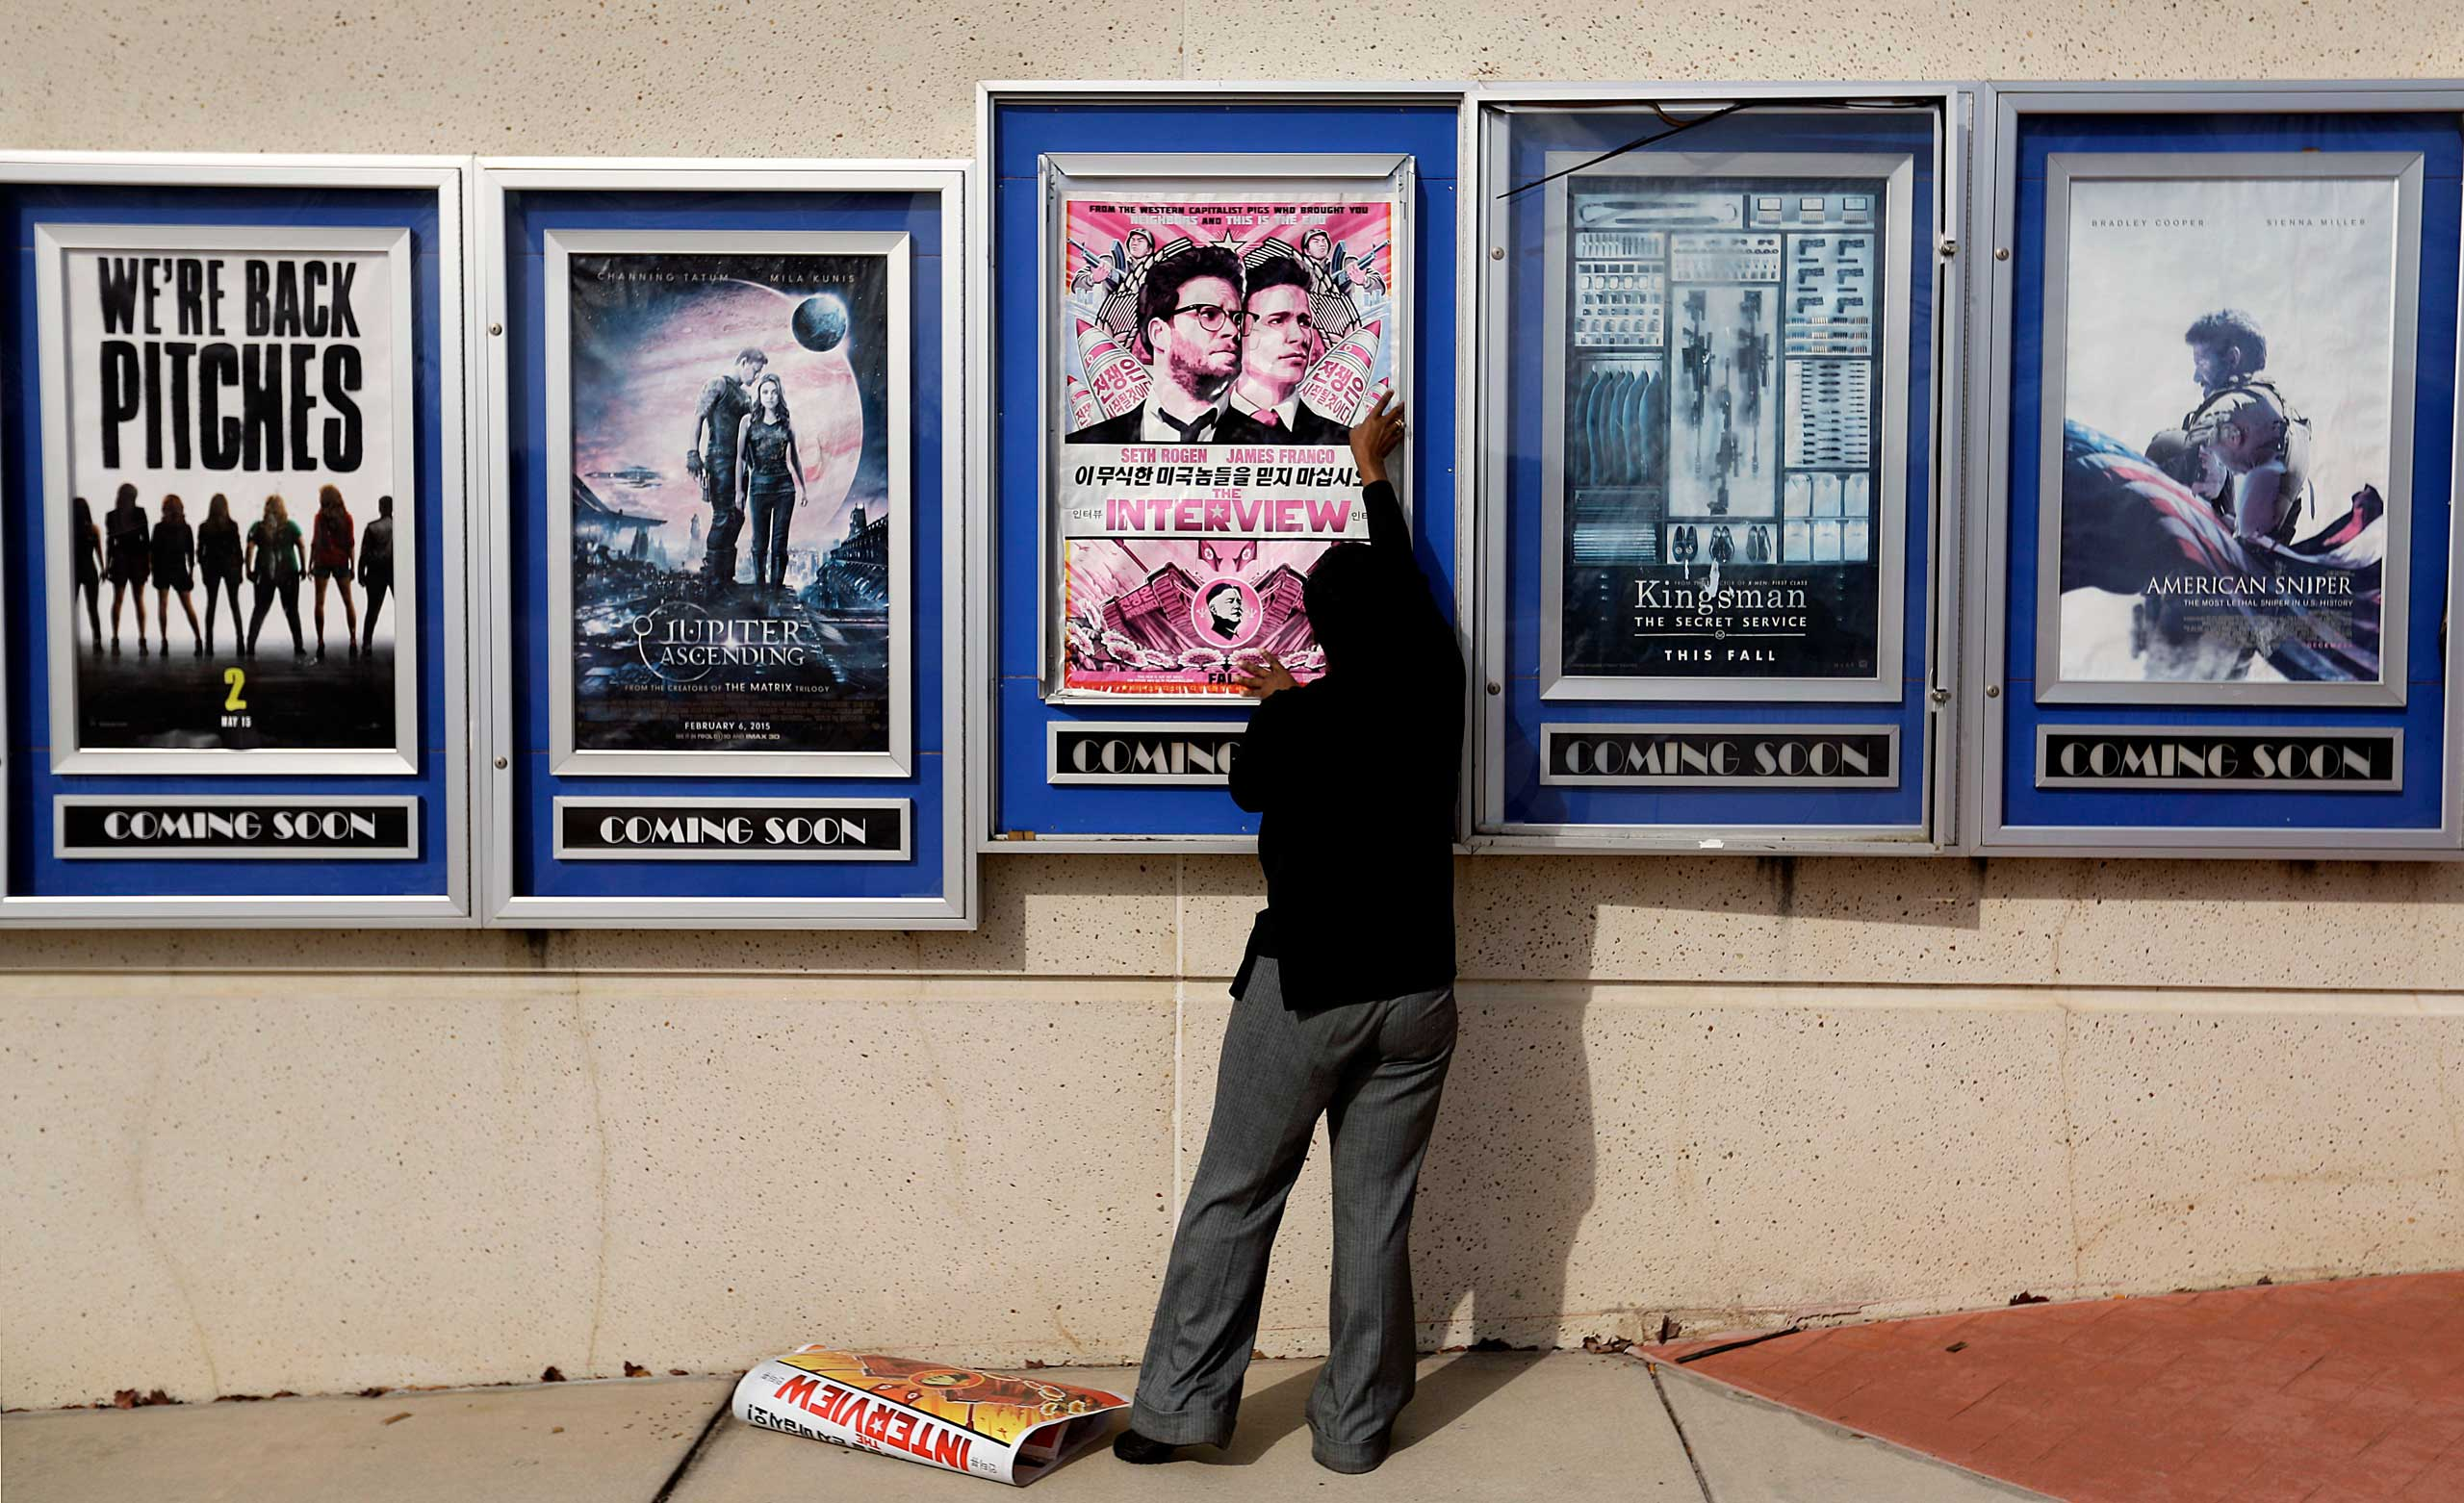 Dec. 17, 2014. A poster for the movie  The Interview  is taken down by a worker after being pulled from a display case at a Carmike Cinemas movie theater, Wednesday, Dec. 17, 2014, in Atlanta. Georgia-based Carmike Cinemas has decided to cancel its planned showings of  The Interview  in the wake of threats against theatergoers by the Sony hackers.